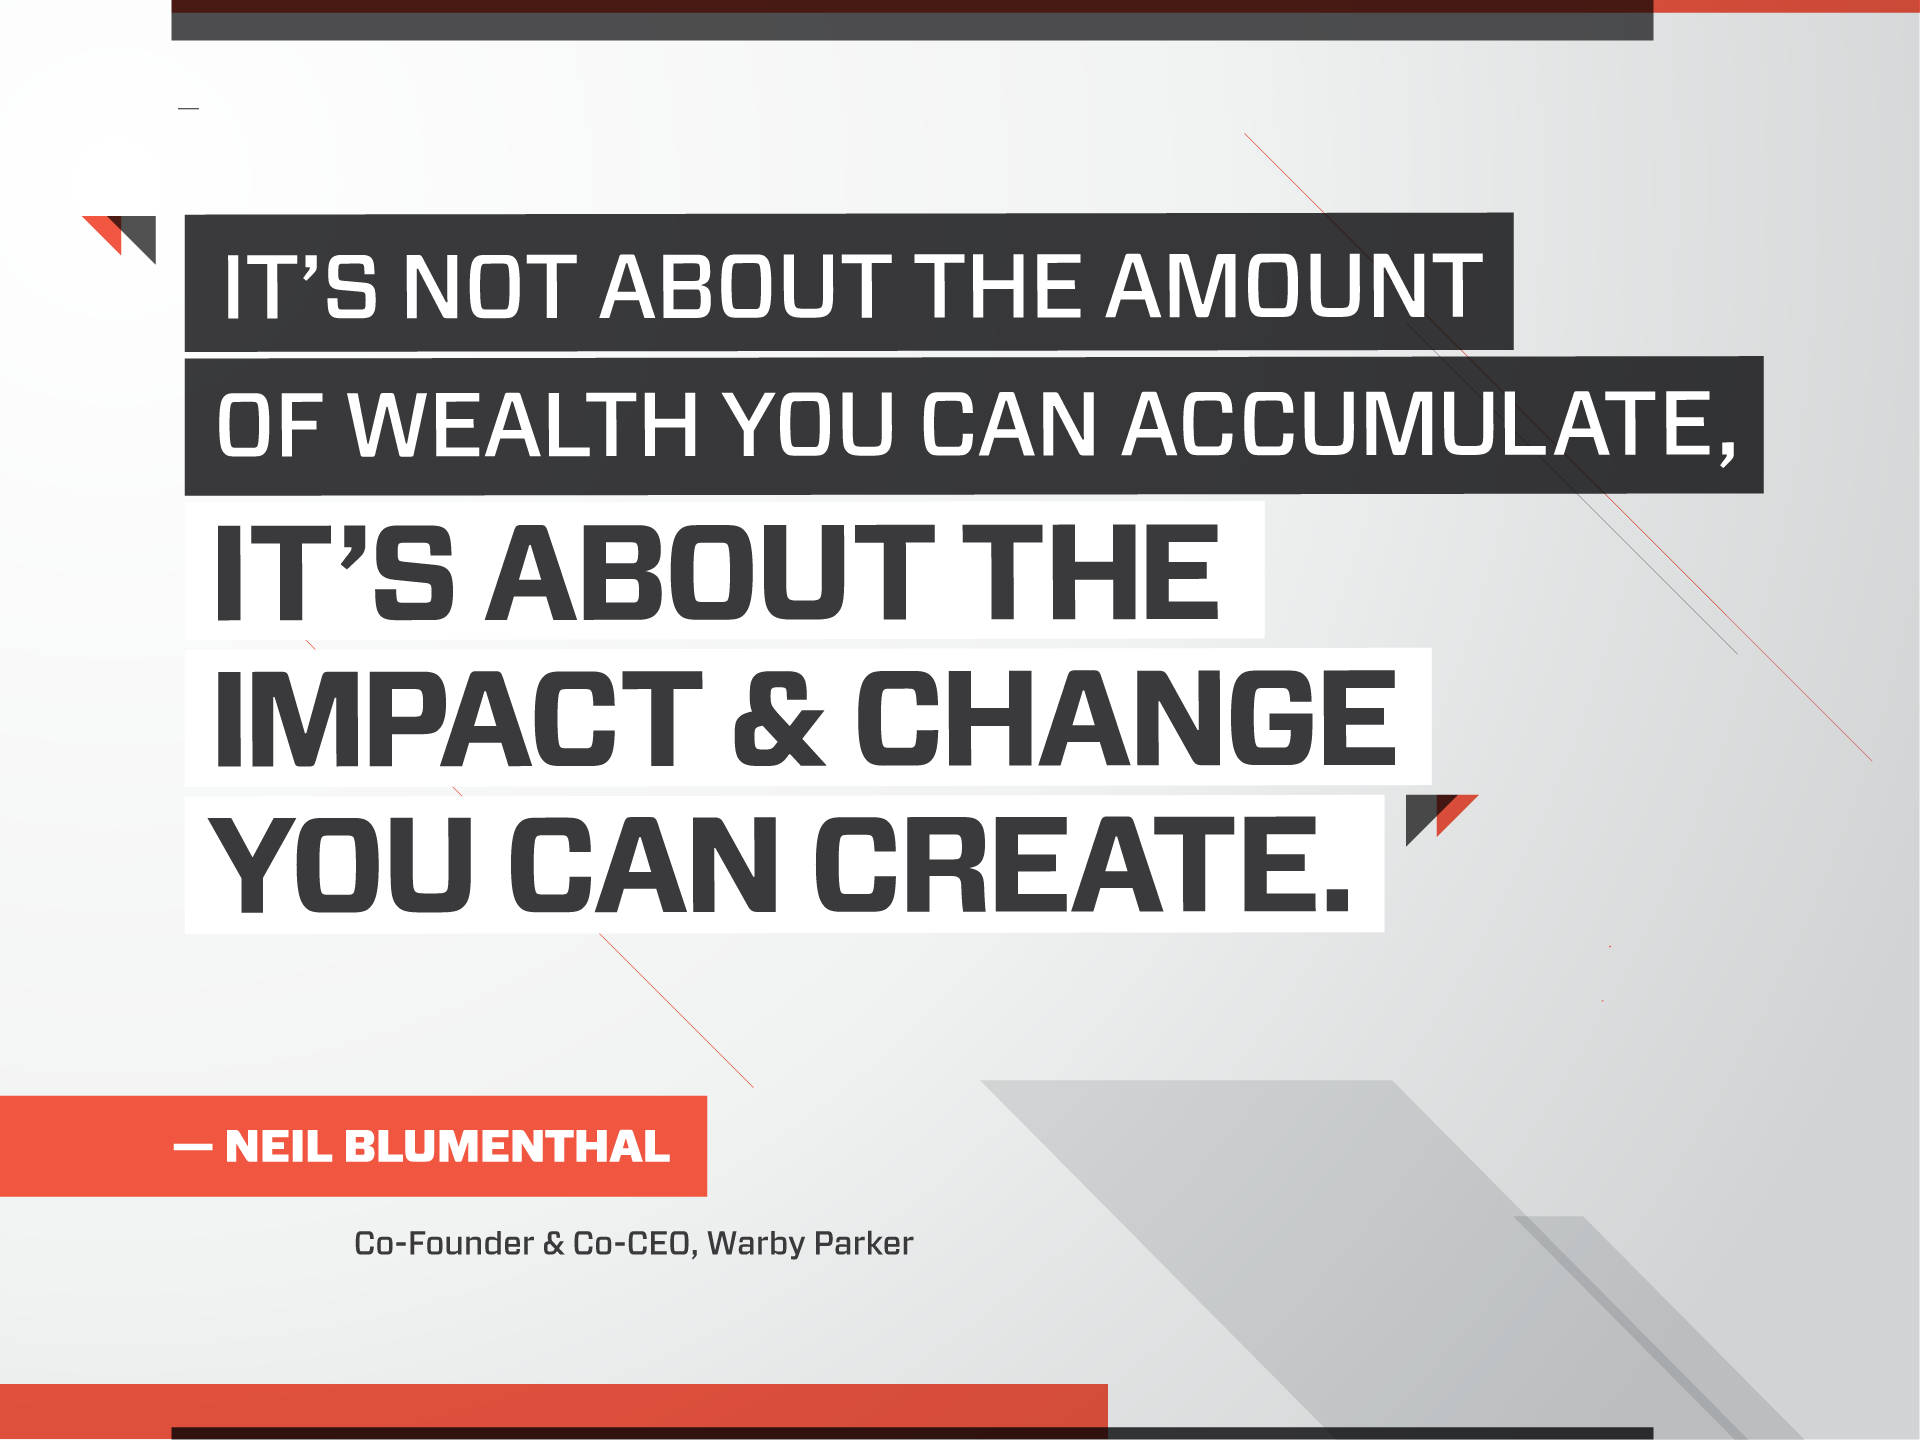 neil-blumenthal quote